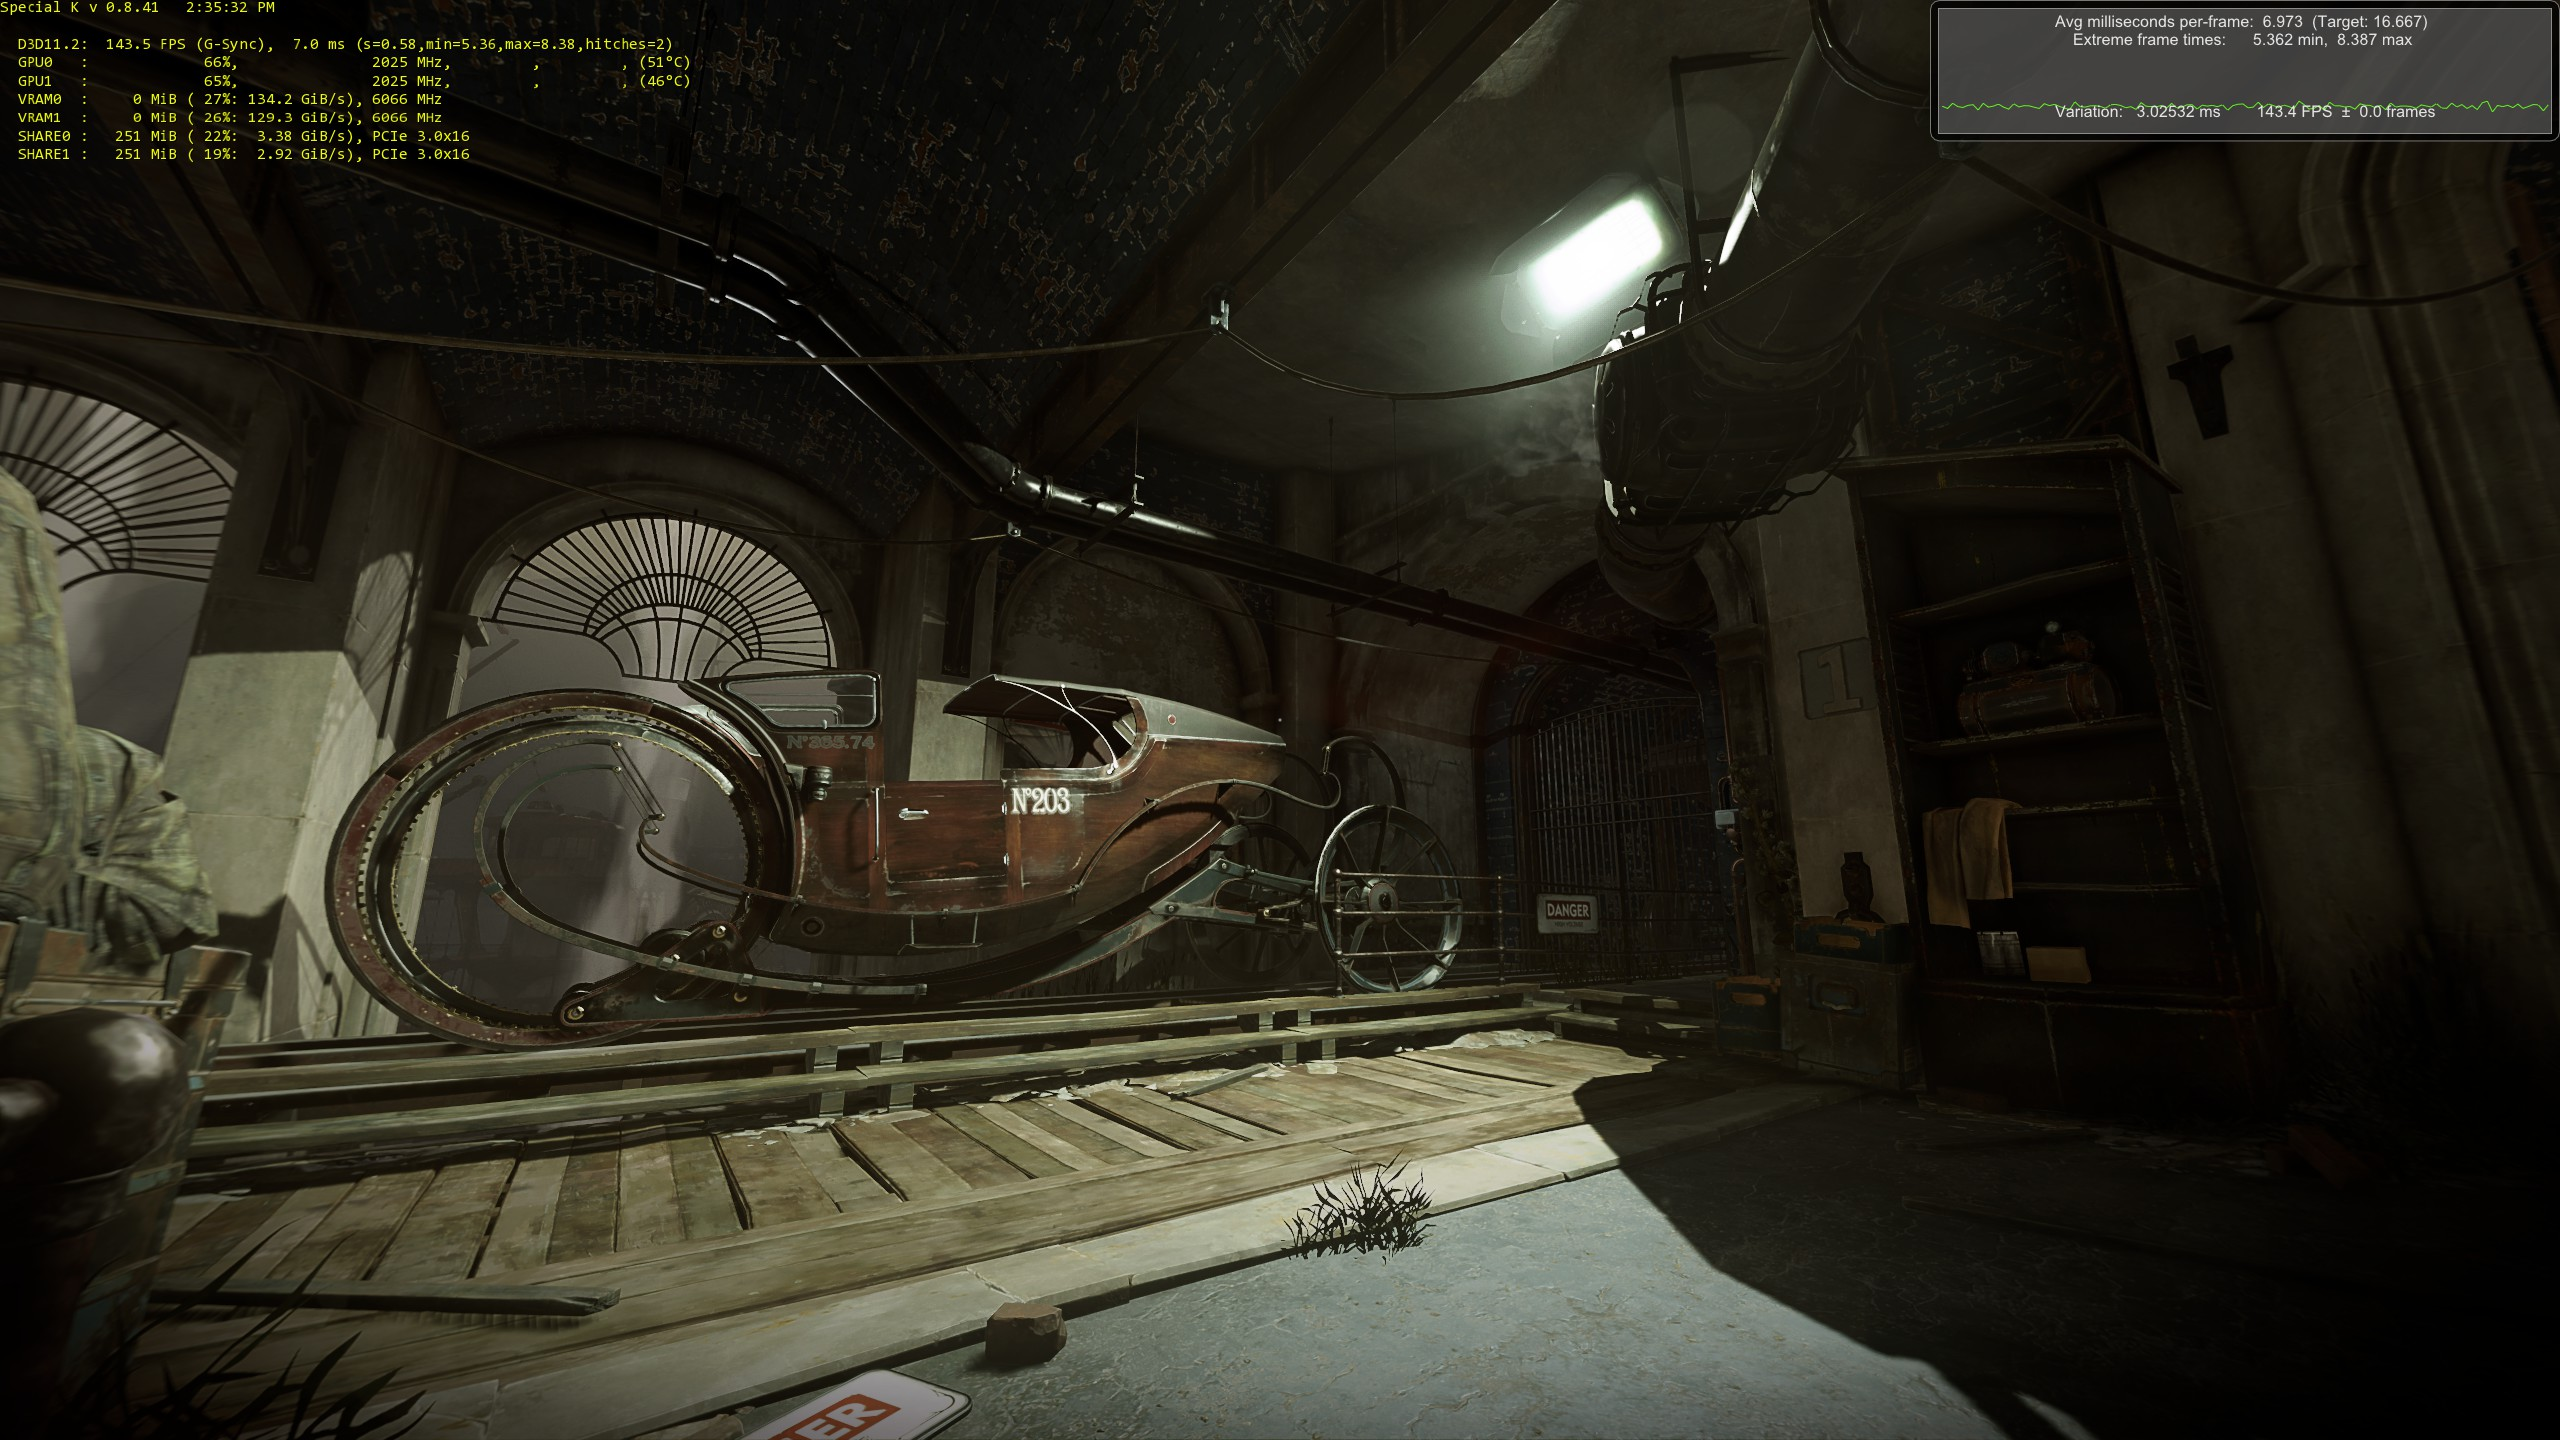 Dishonored: Death of the Outsider PC performance thread   NeoGAF